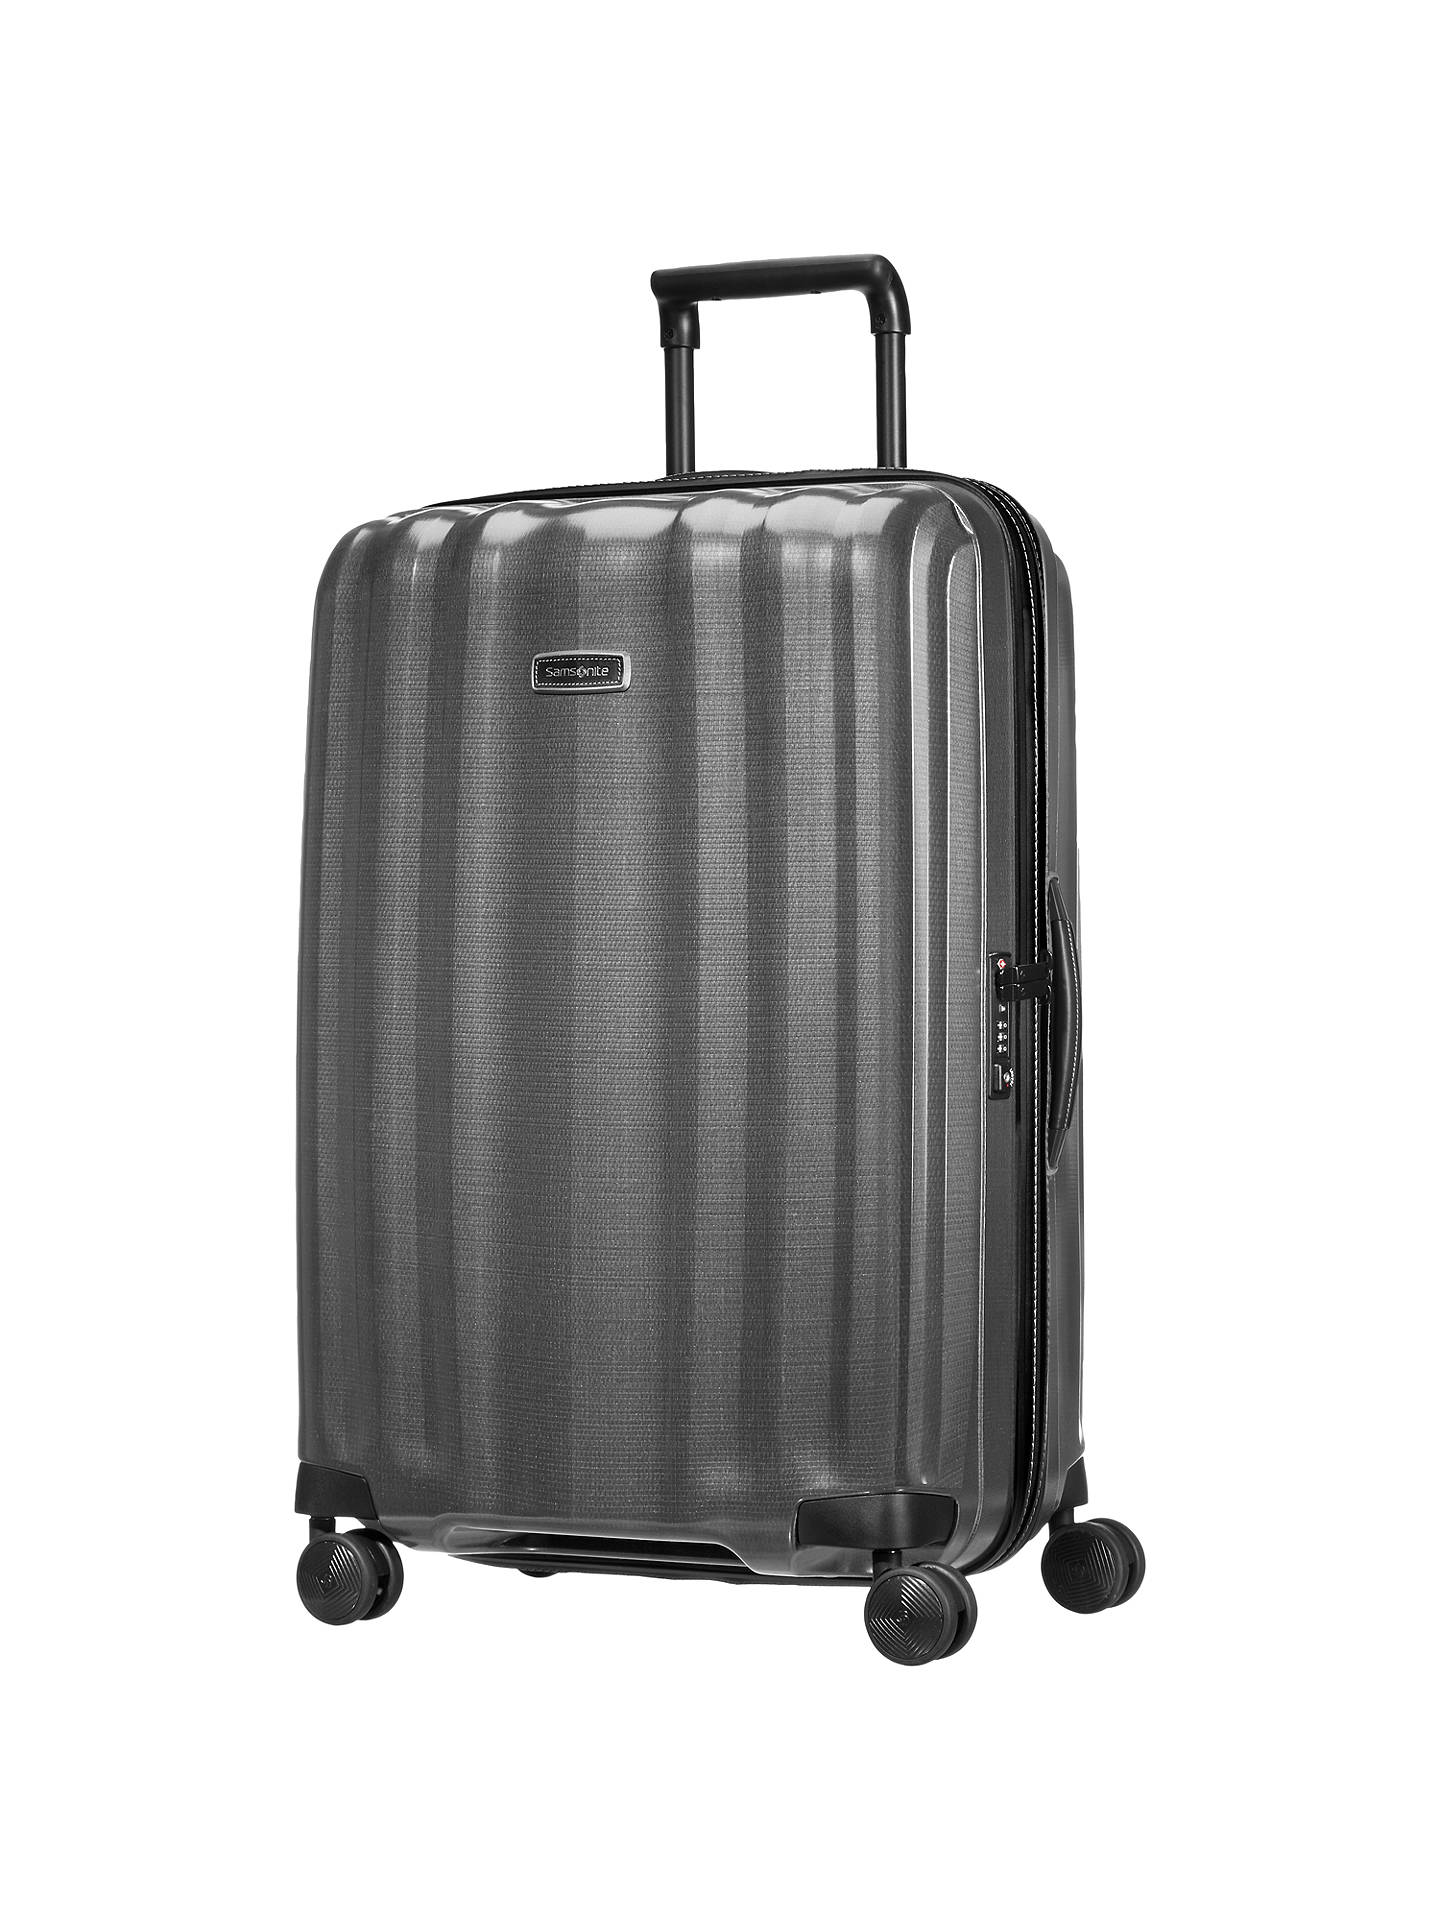 BuySamsonite Litecube DLX Spinner 4-Wheel 76cm Suitcase, Eclipse Grey Online at johnlewis.com